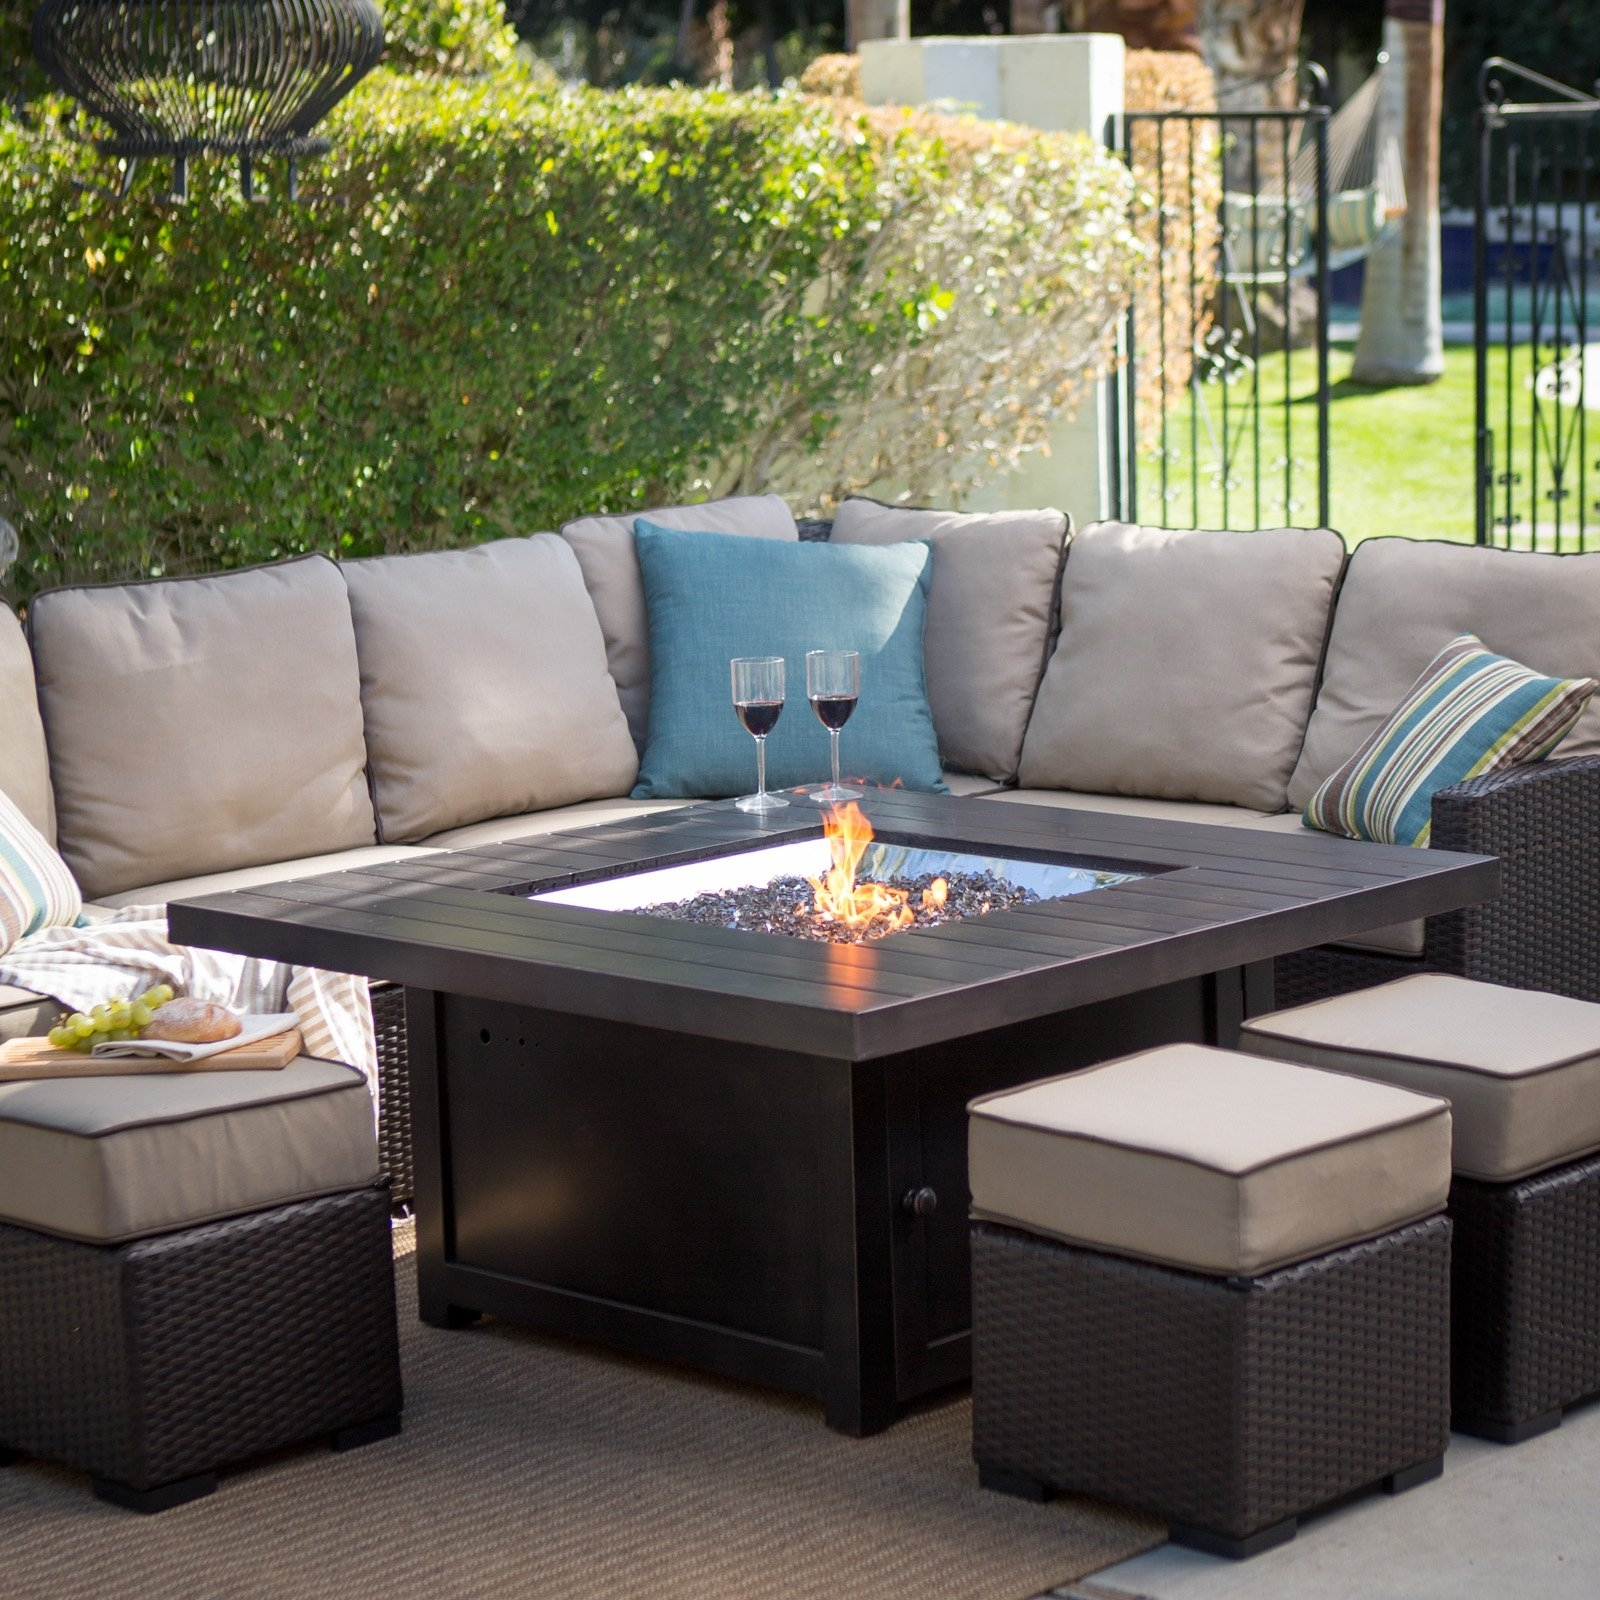 Most Recent Furniture: High Quality Patio Furniture Columbus Ohio And Fire Pit Regarding Patio Conversation Sets With Gas Fire Pit (View 5 of 15)